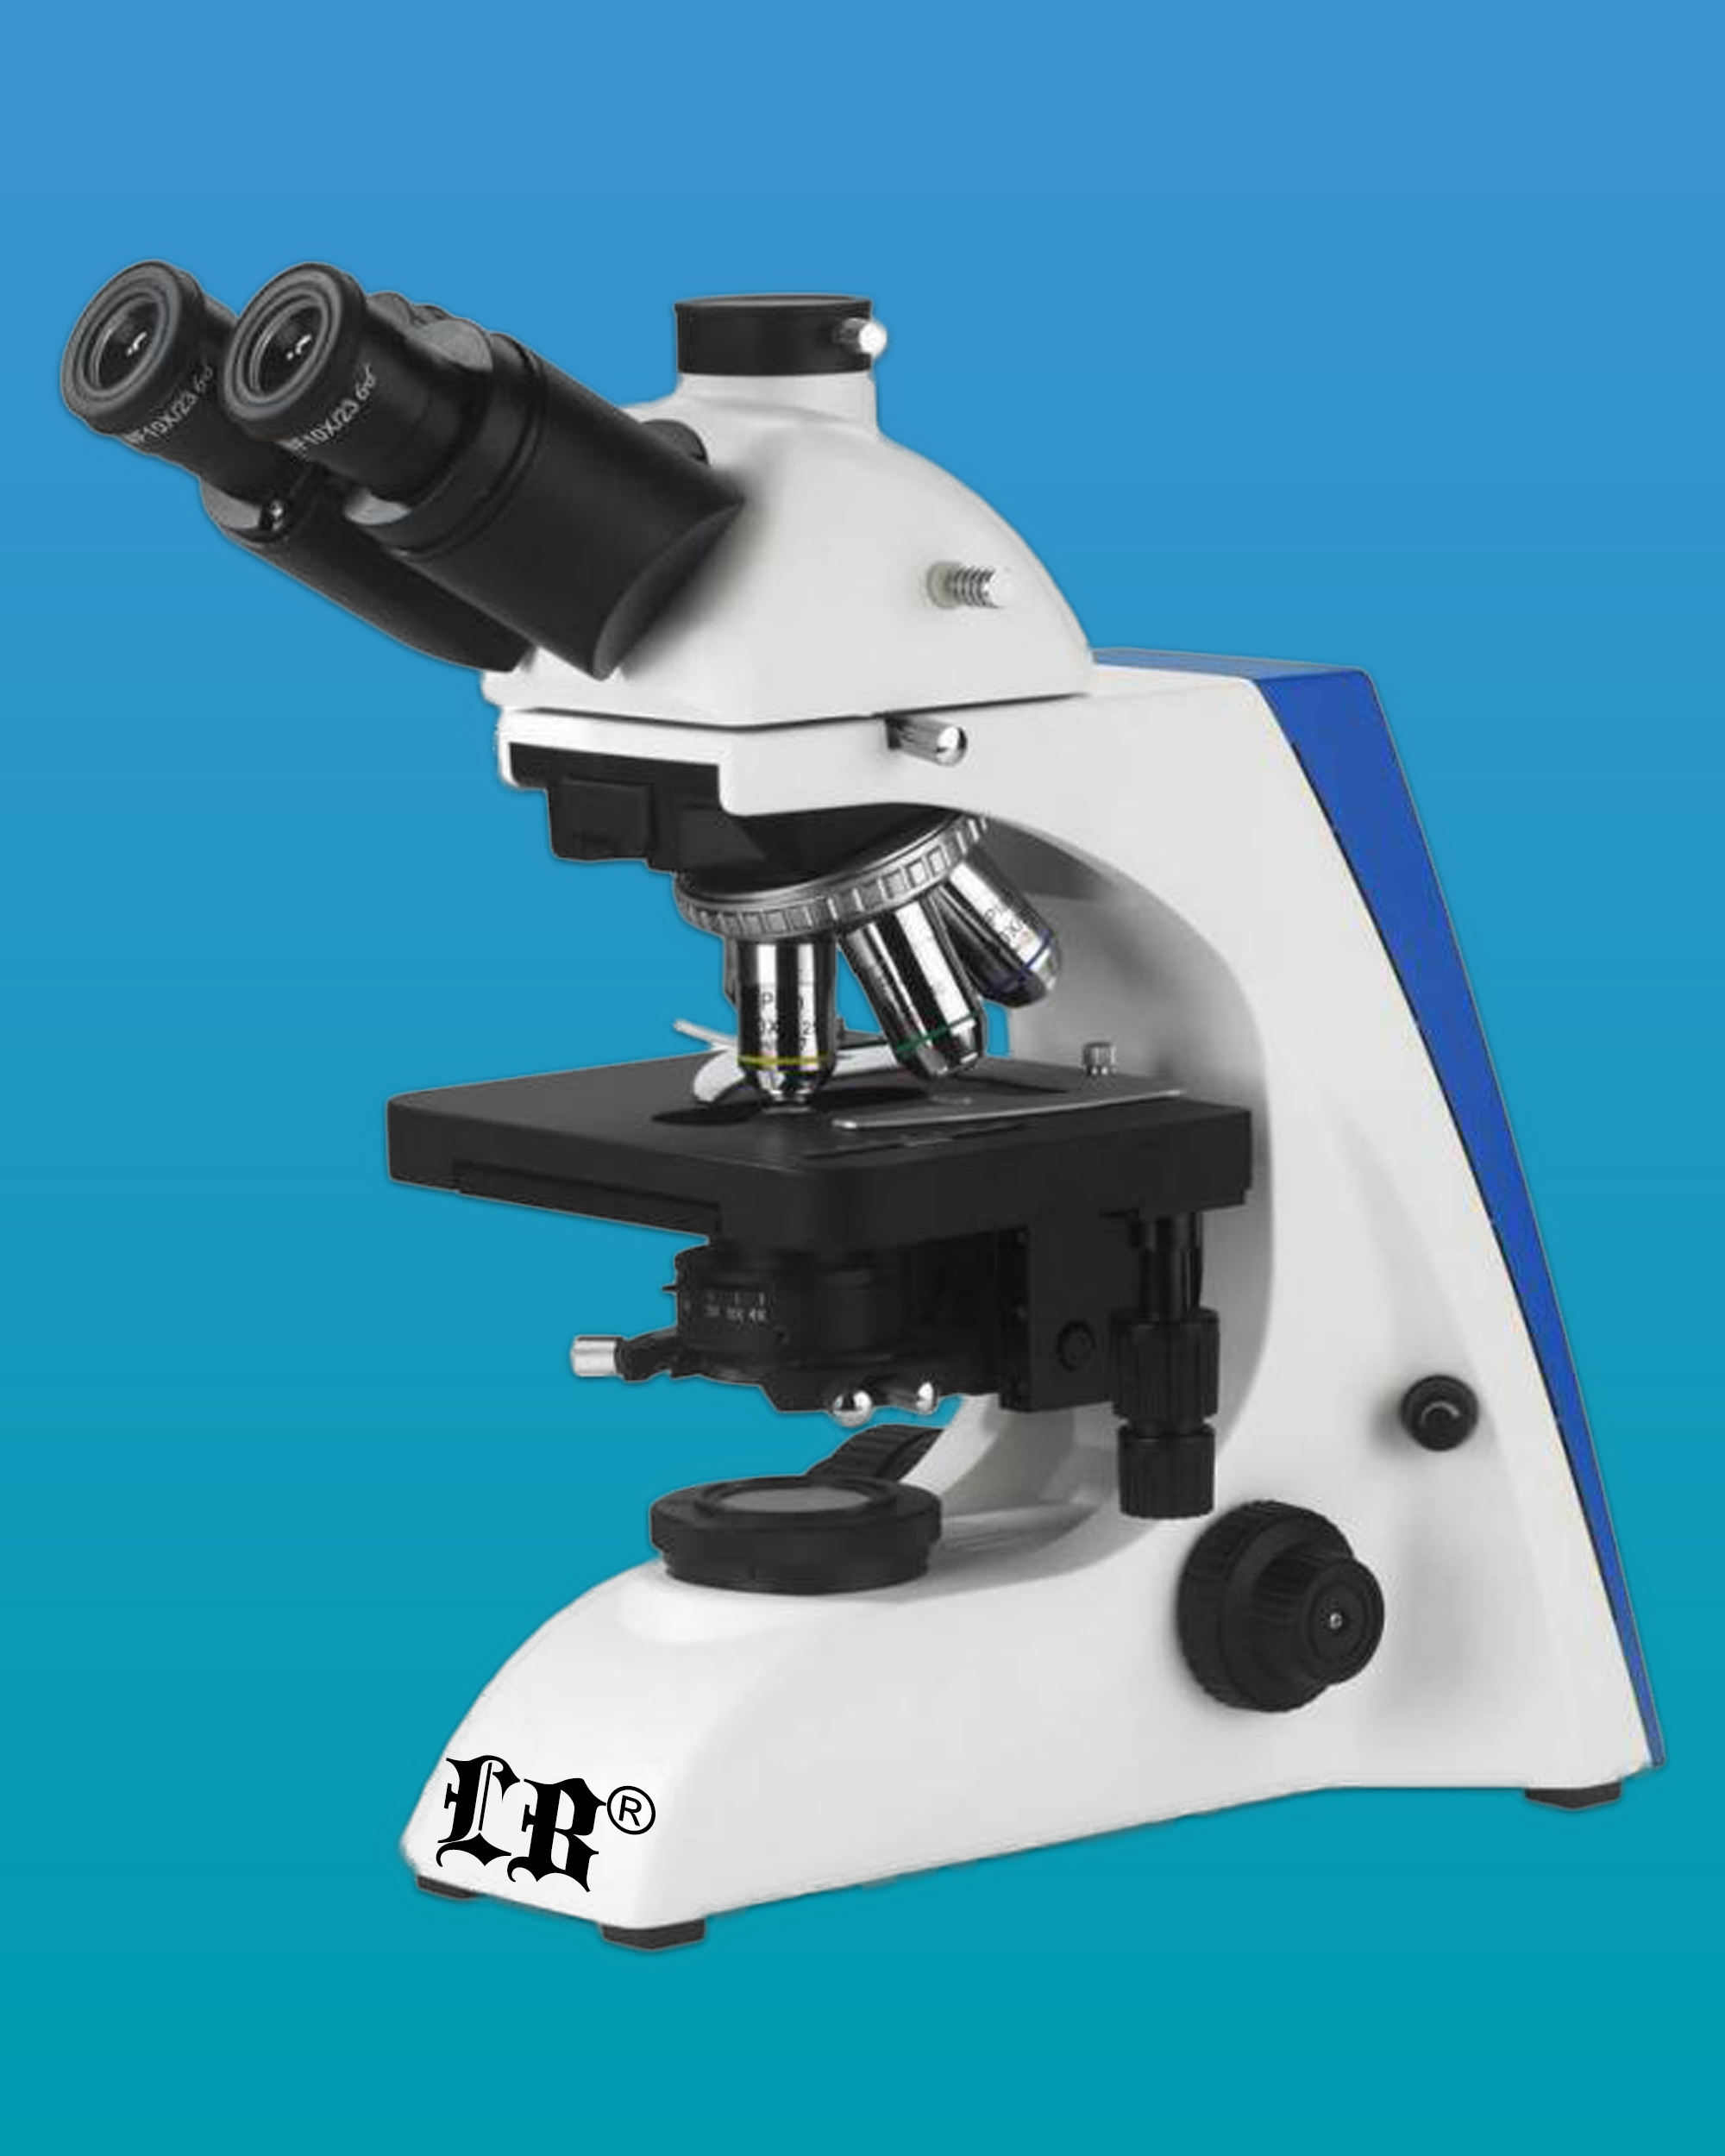 [LB-277] Trinocular Biological Microscope w/ Infinite Optical System, Wide Field, Infinite Plan Achromatic Objectives (4x, 10x, 20x, 40x, 100x)